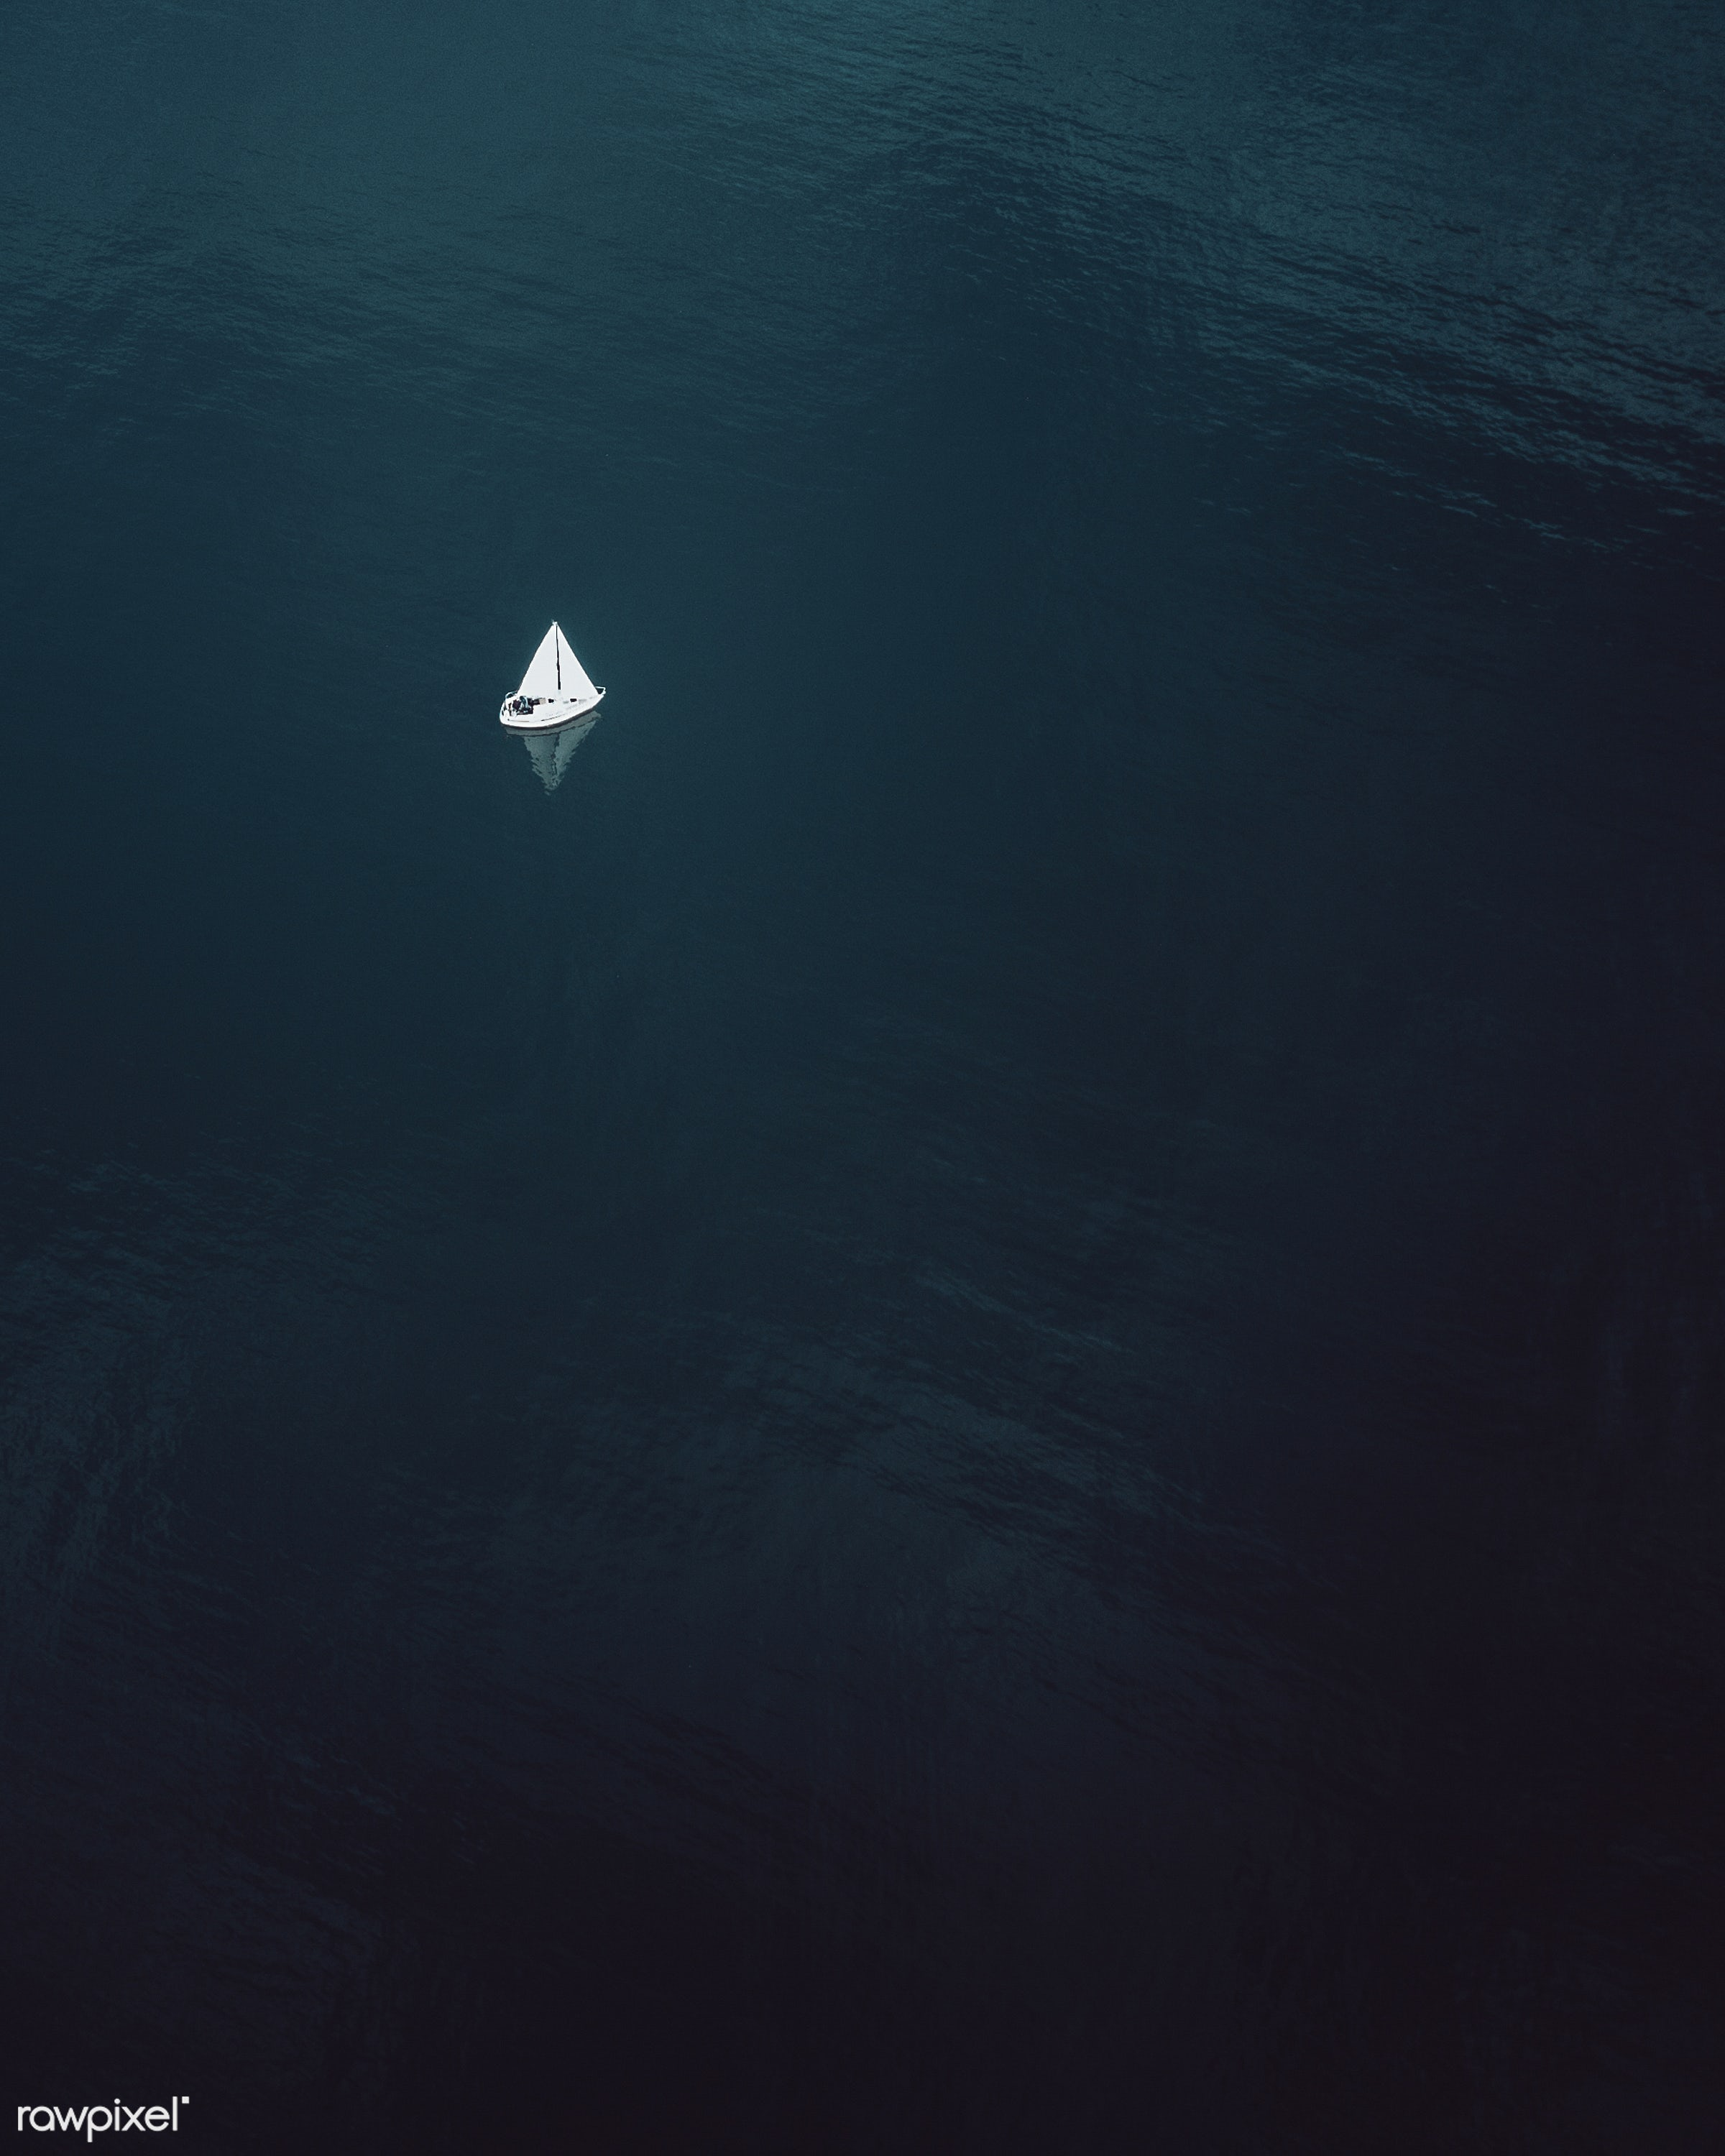 Sailboat on Lake Constance, Germany - activity, aerial, aerial view, background, boat, boating, bodensee, cloudy, dark,...